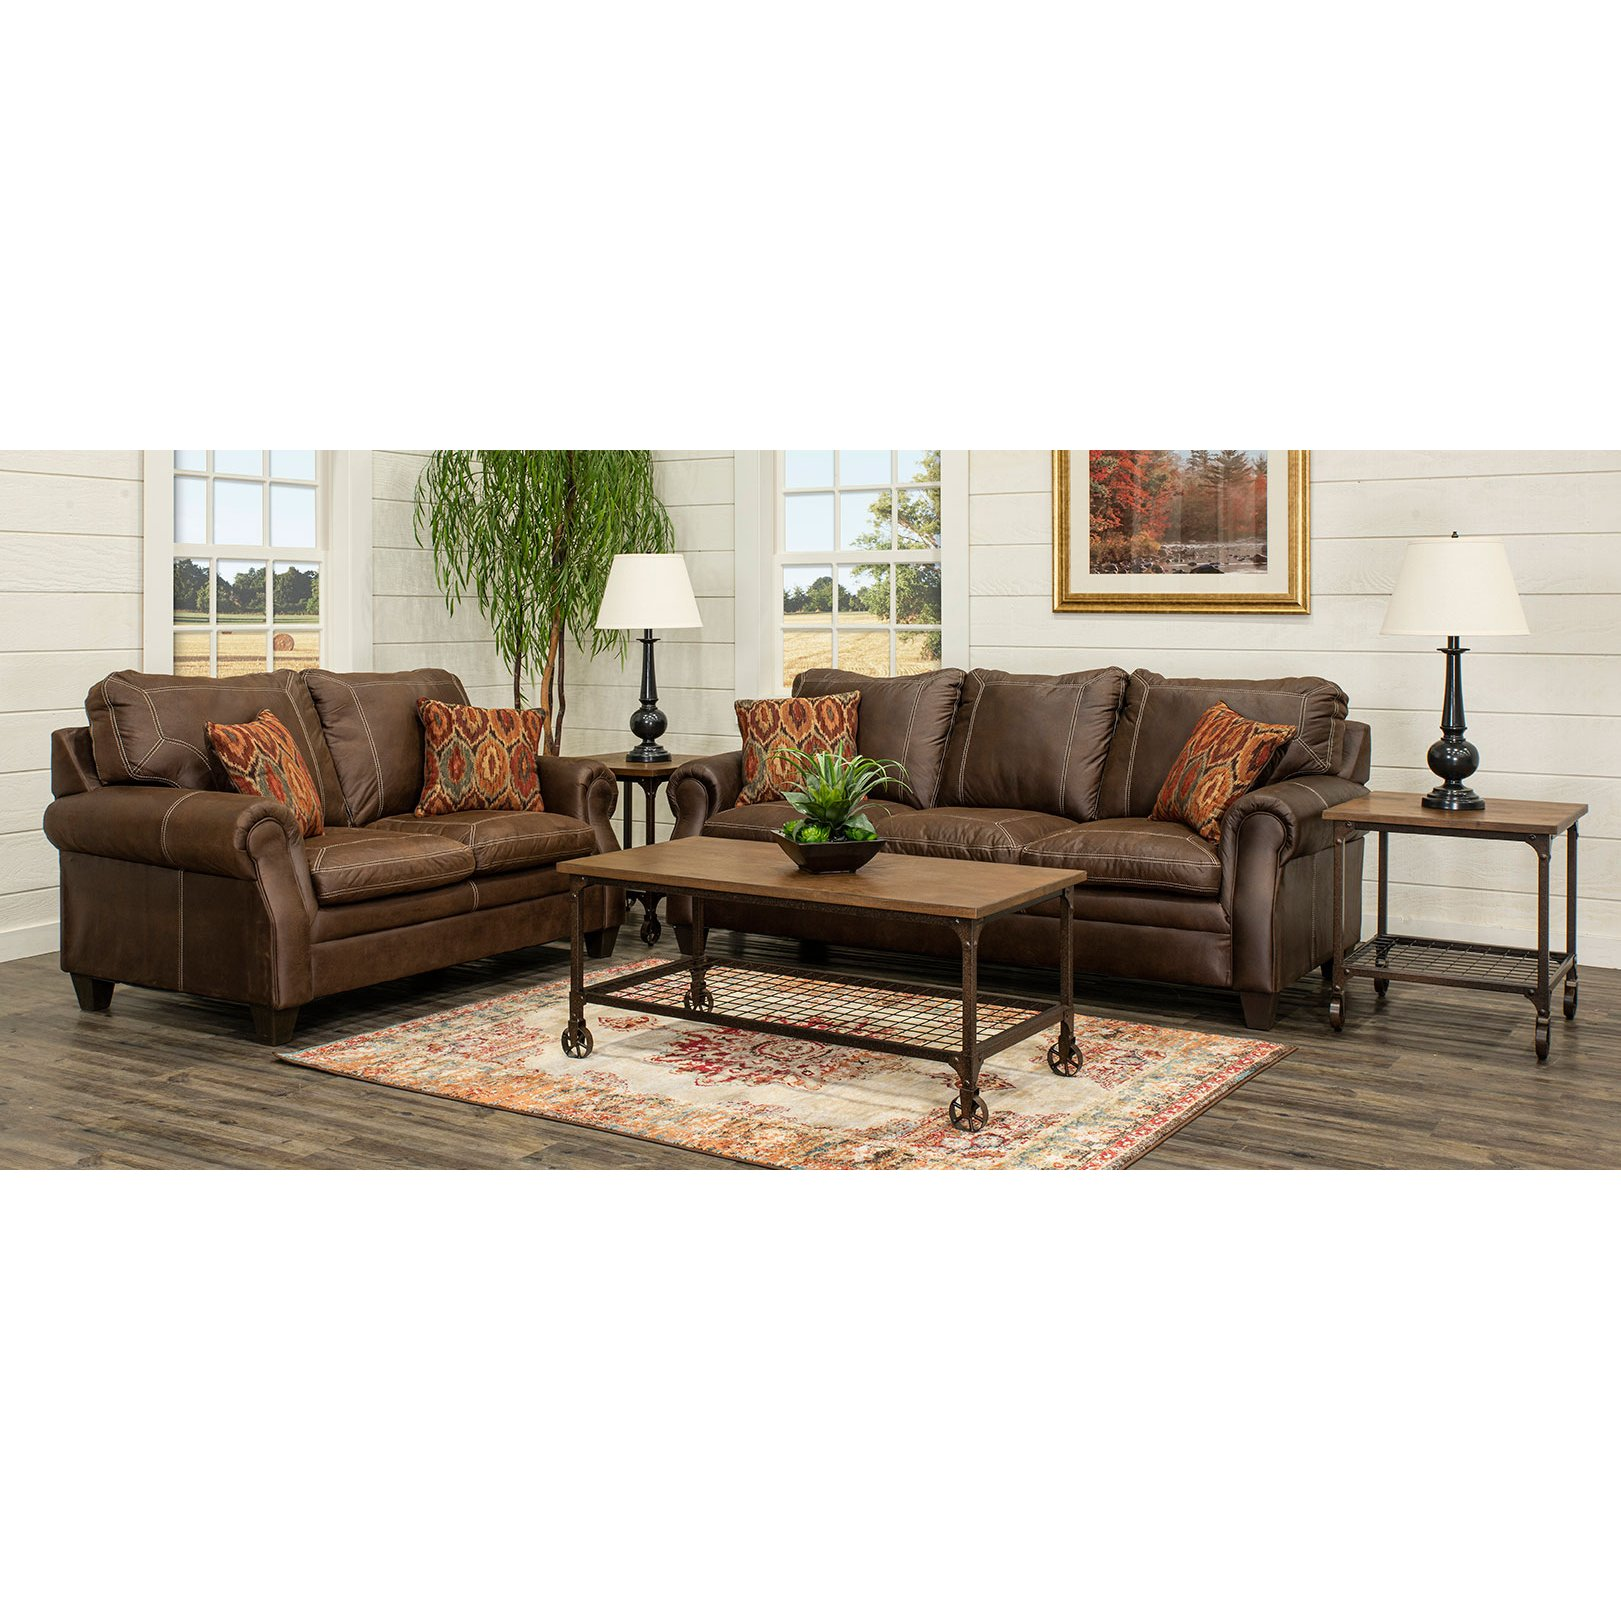 Classic Traditional Brown 7 Piece Room Group   Shiloh | RC Willey Furniture  Store